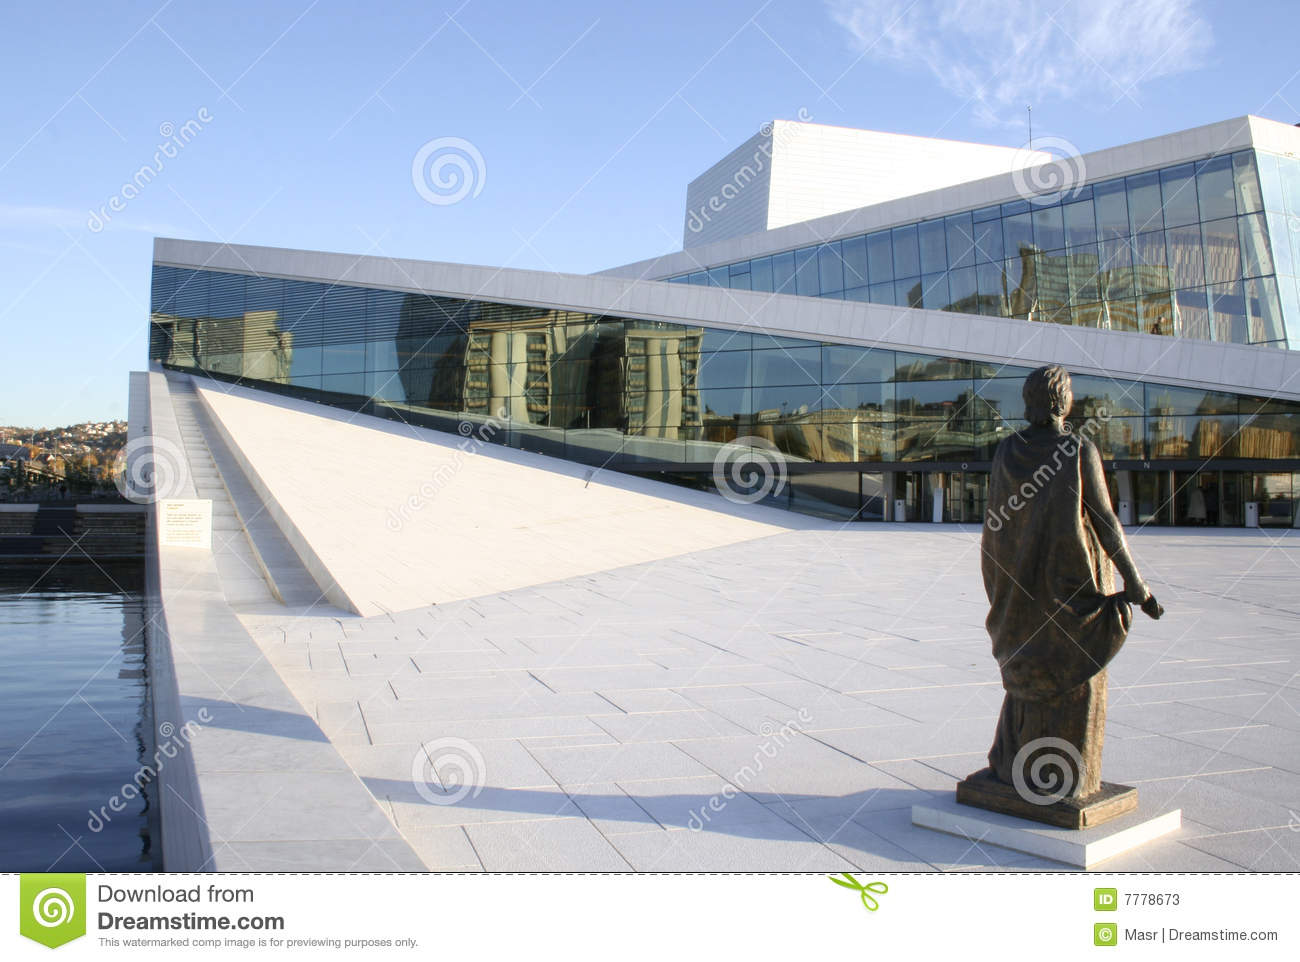 The opera house in oslo norway statue depicts opera singer kirsten